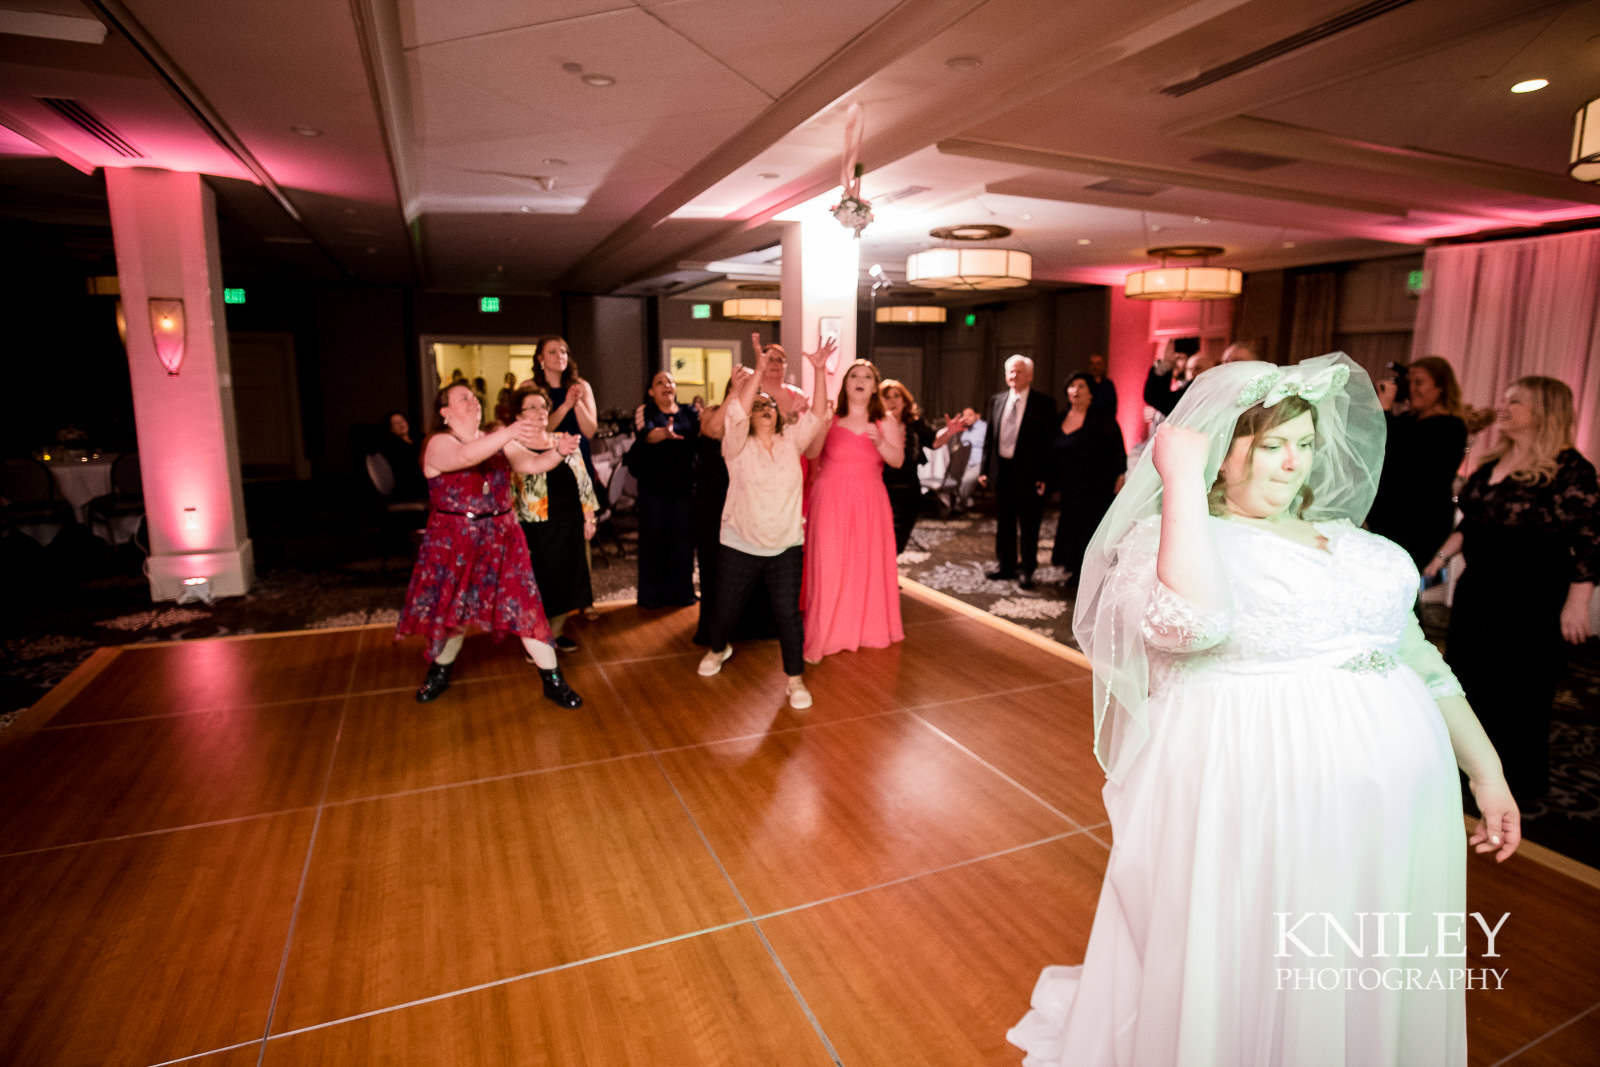 106 - Woodcliff Hotel - Rochester NY wedding photo - Kniley Photography.jpg